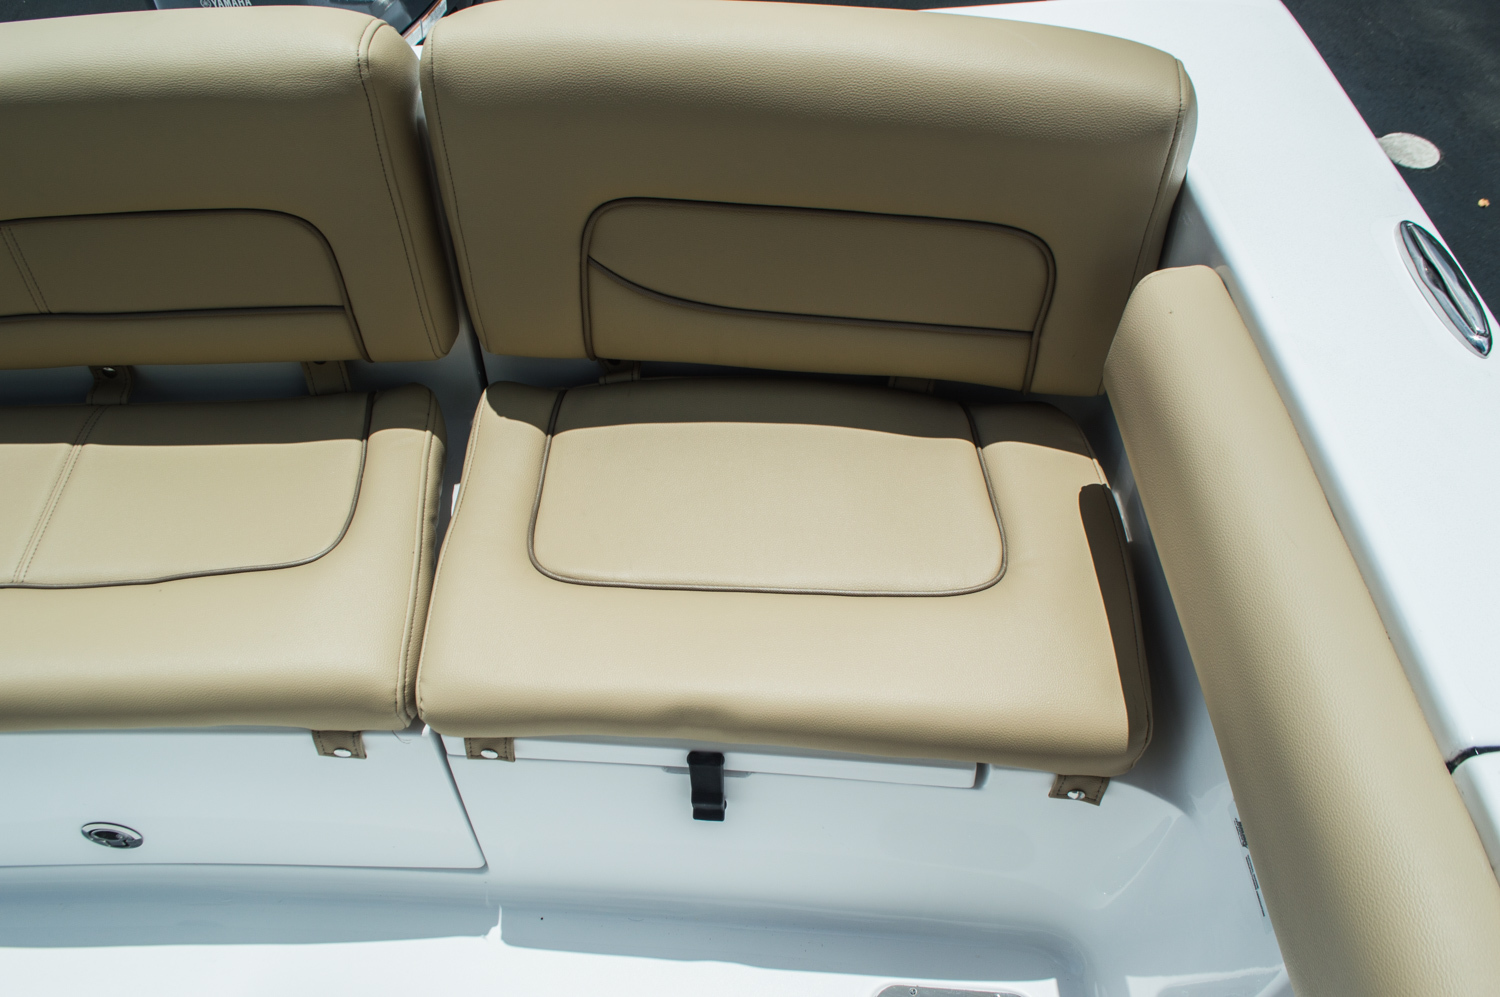 Thumbnail 44 for New 2016 Sportsman Heritage 231 Center Console boat for sale in West Palm Beach, FL